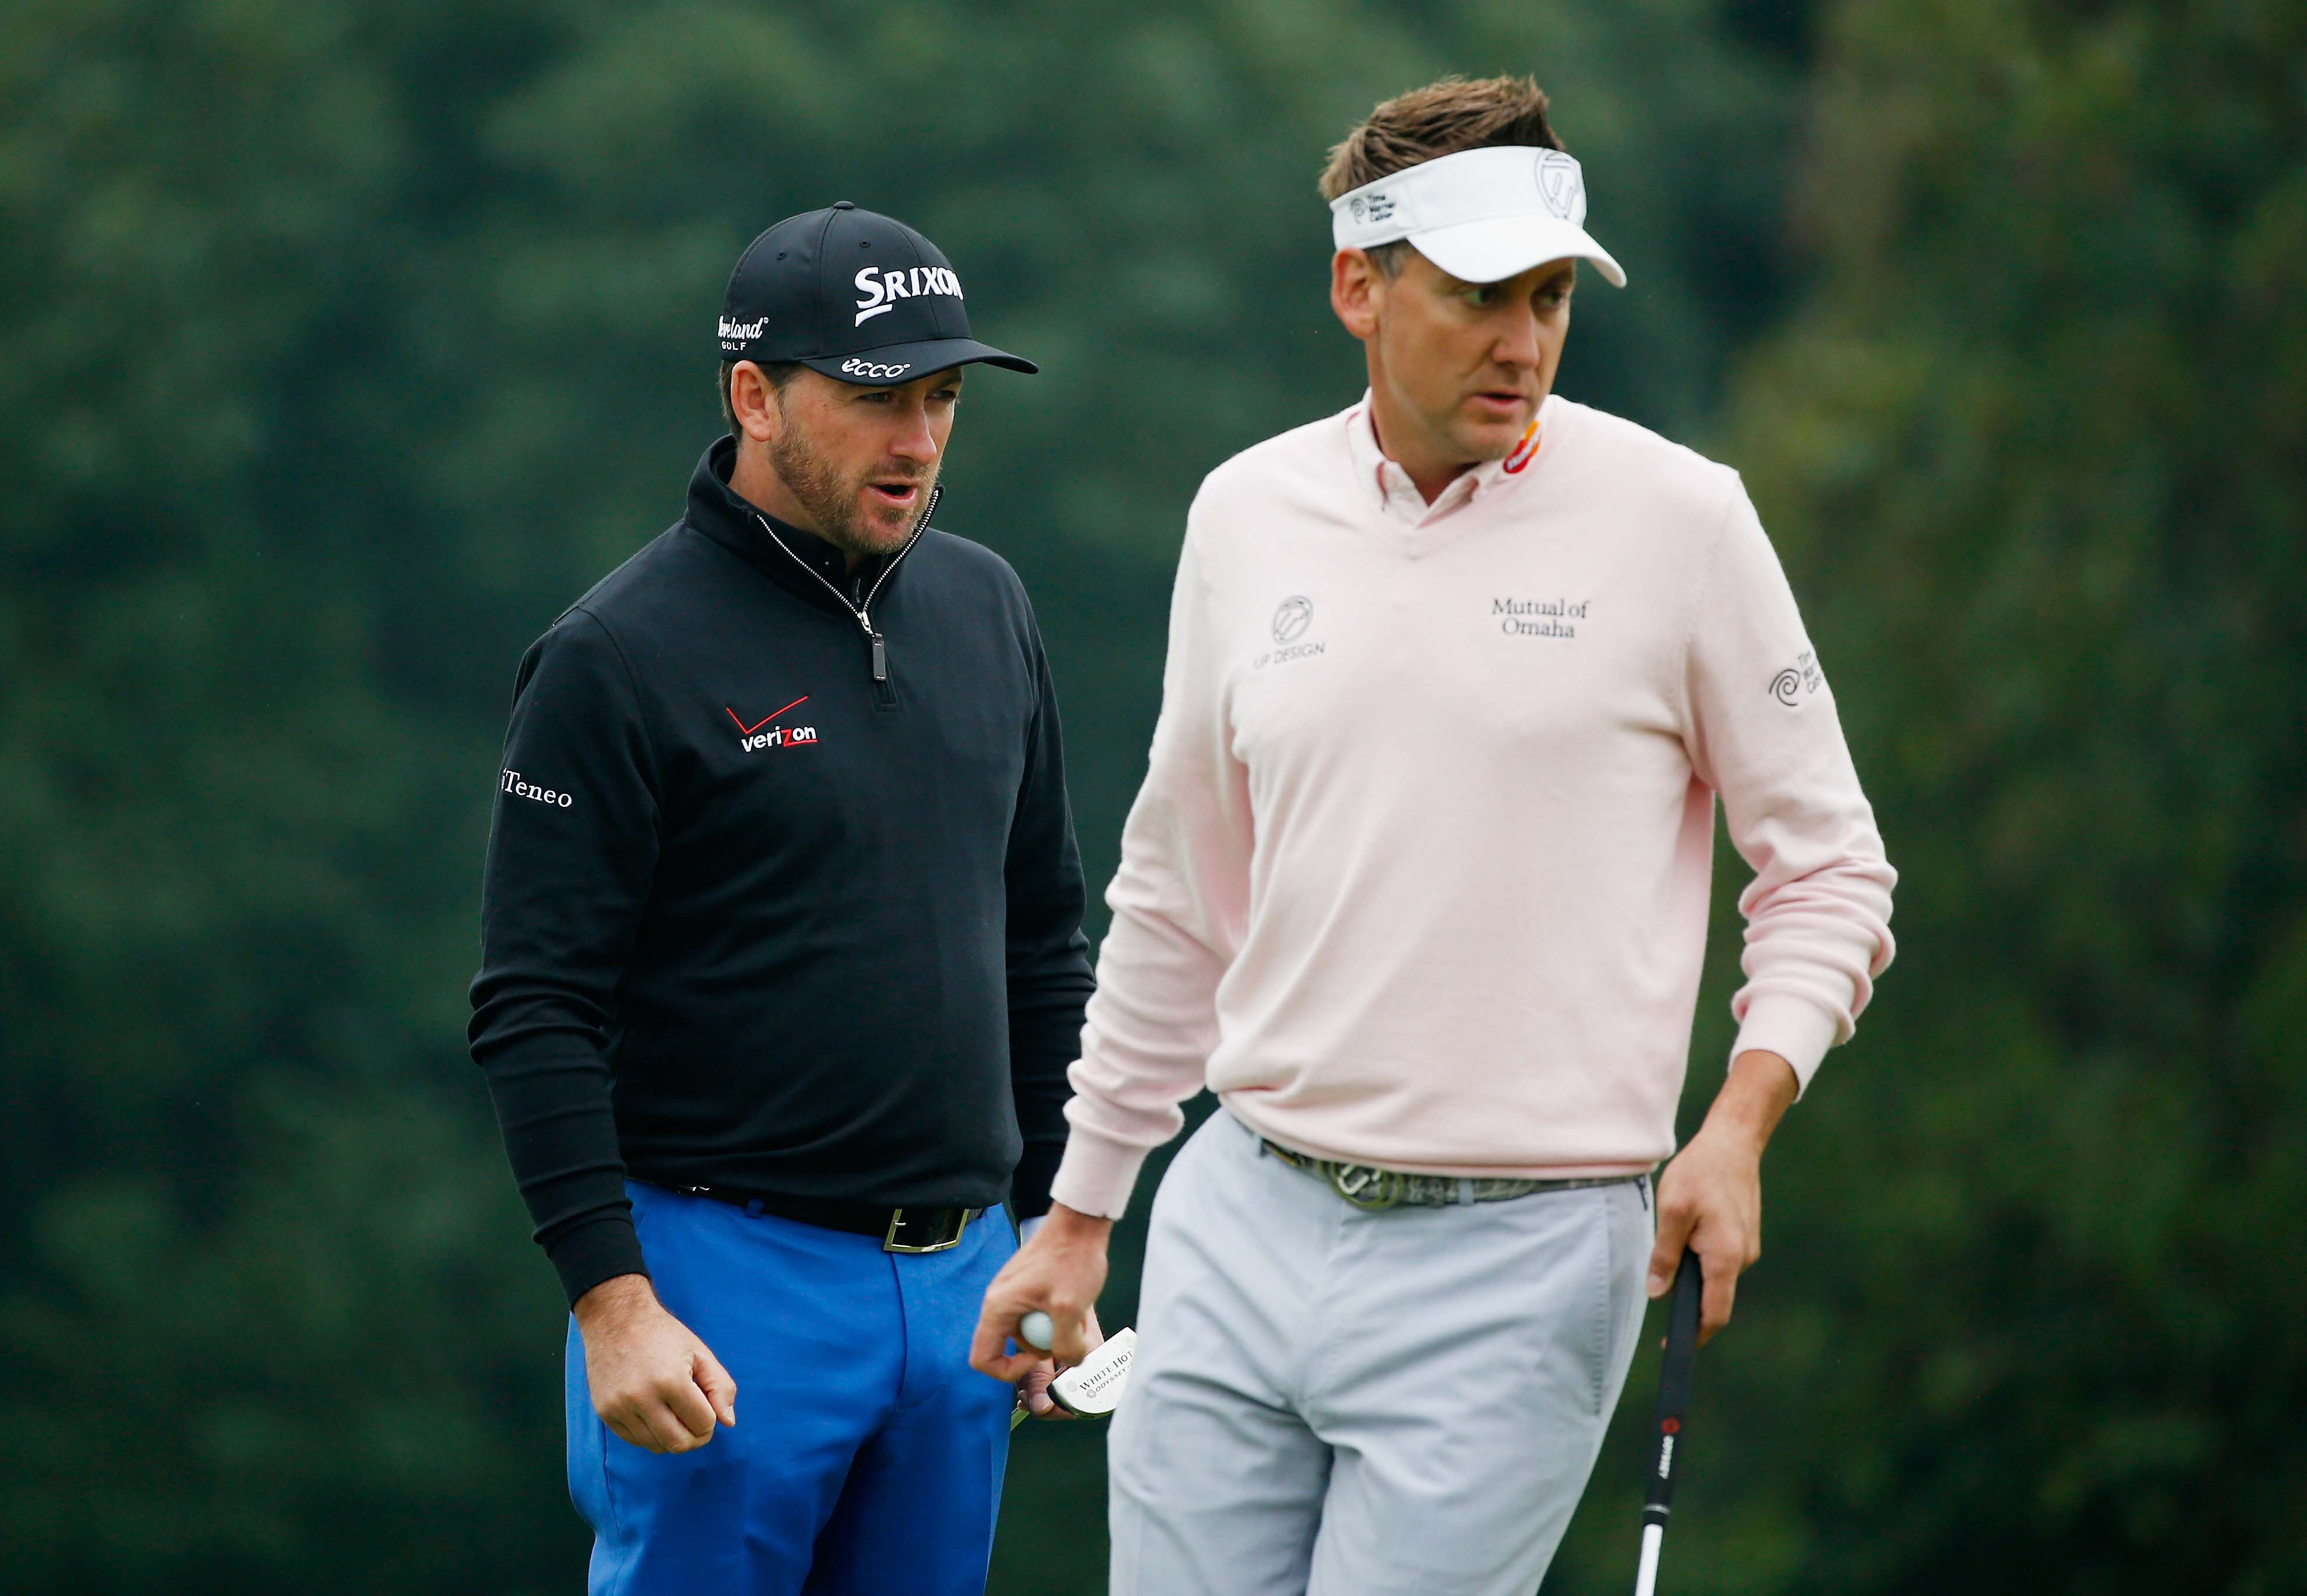 Graeme McDowell and Ian Poulter